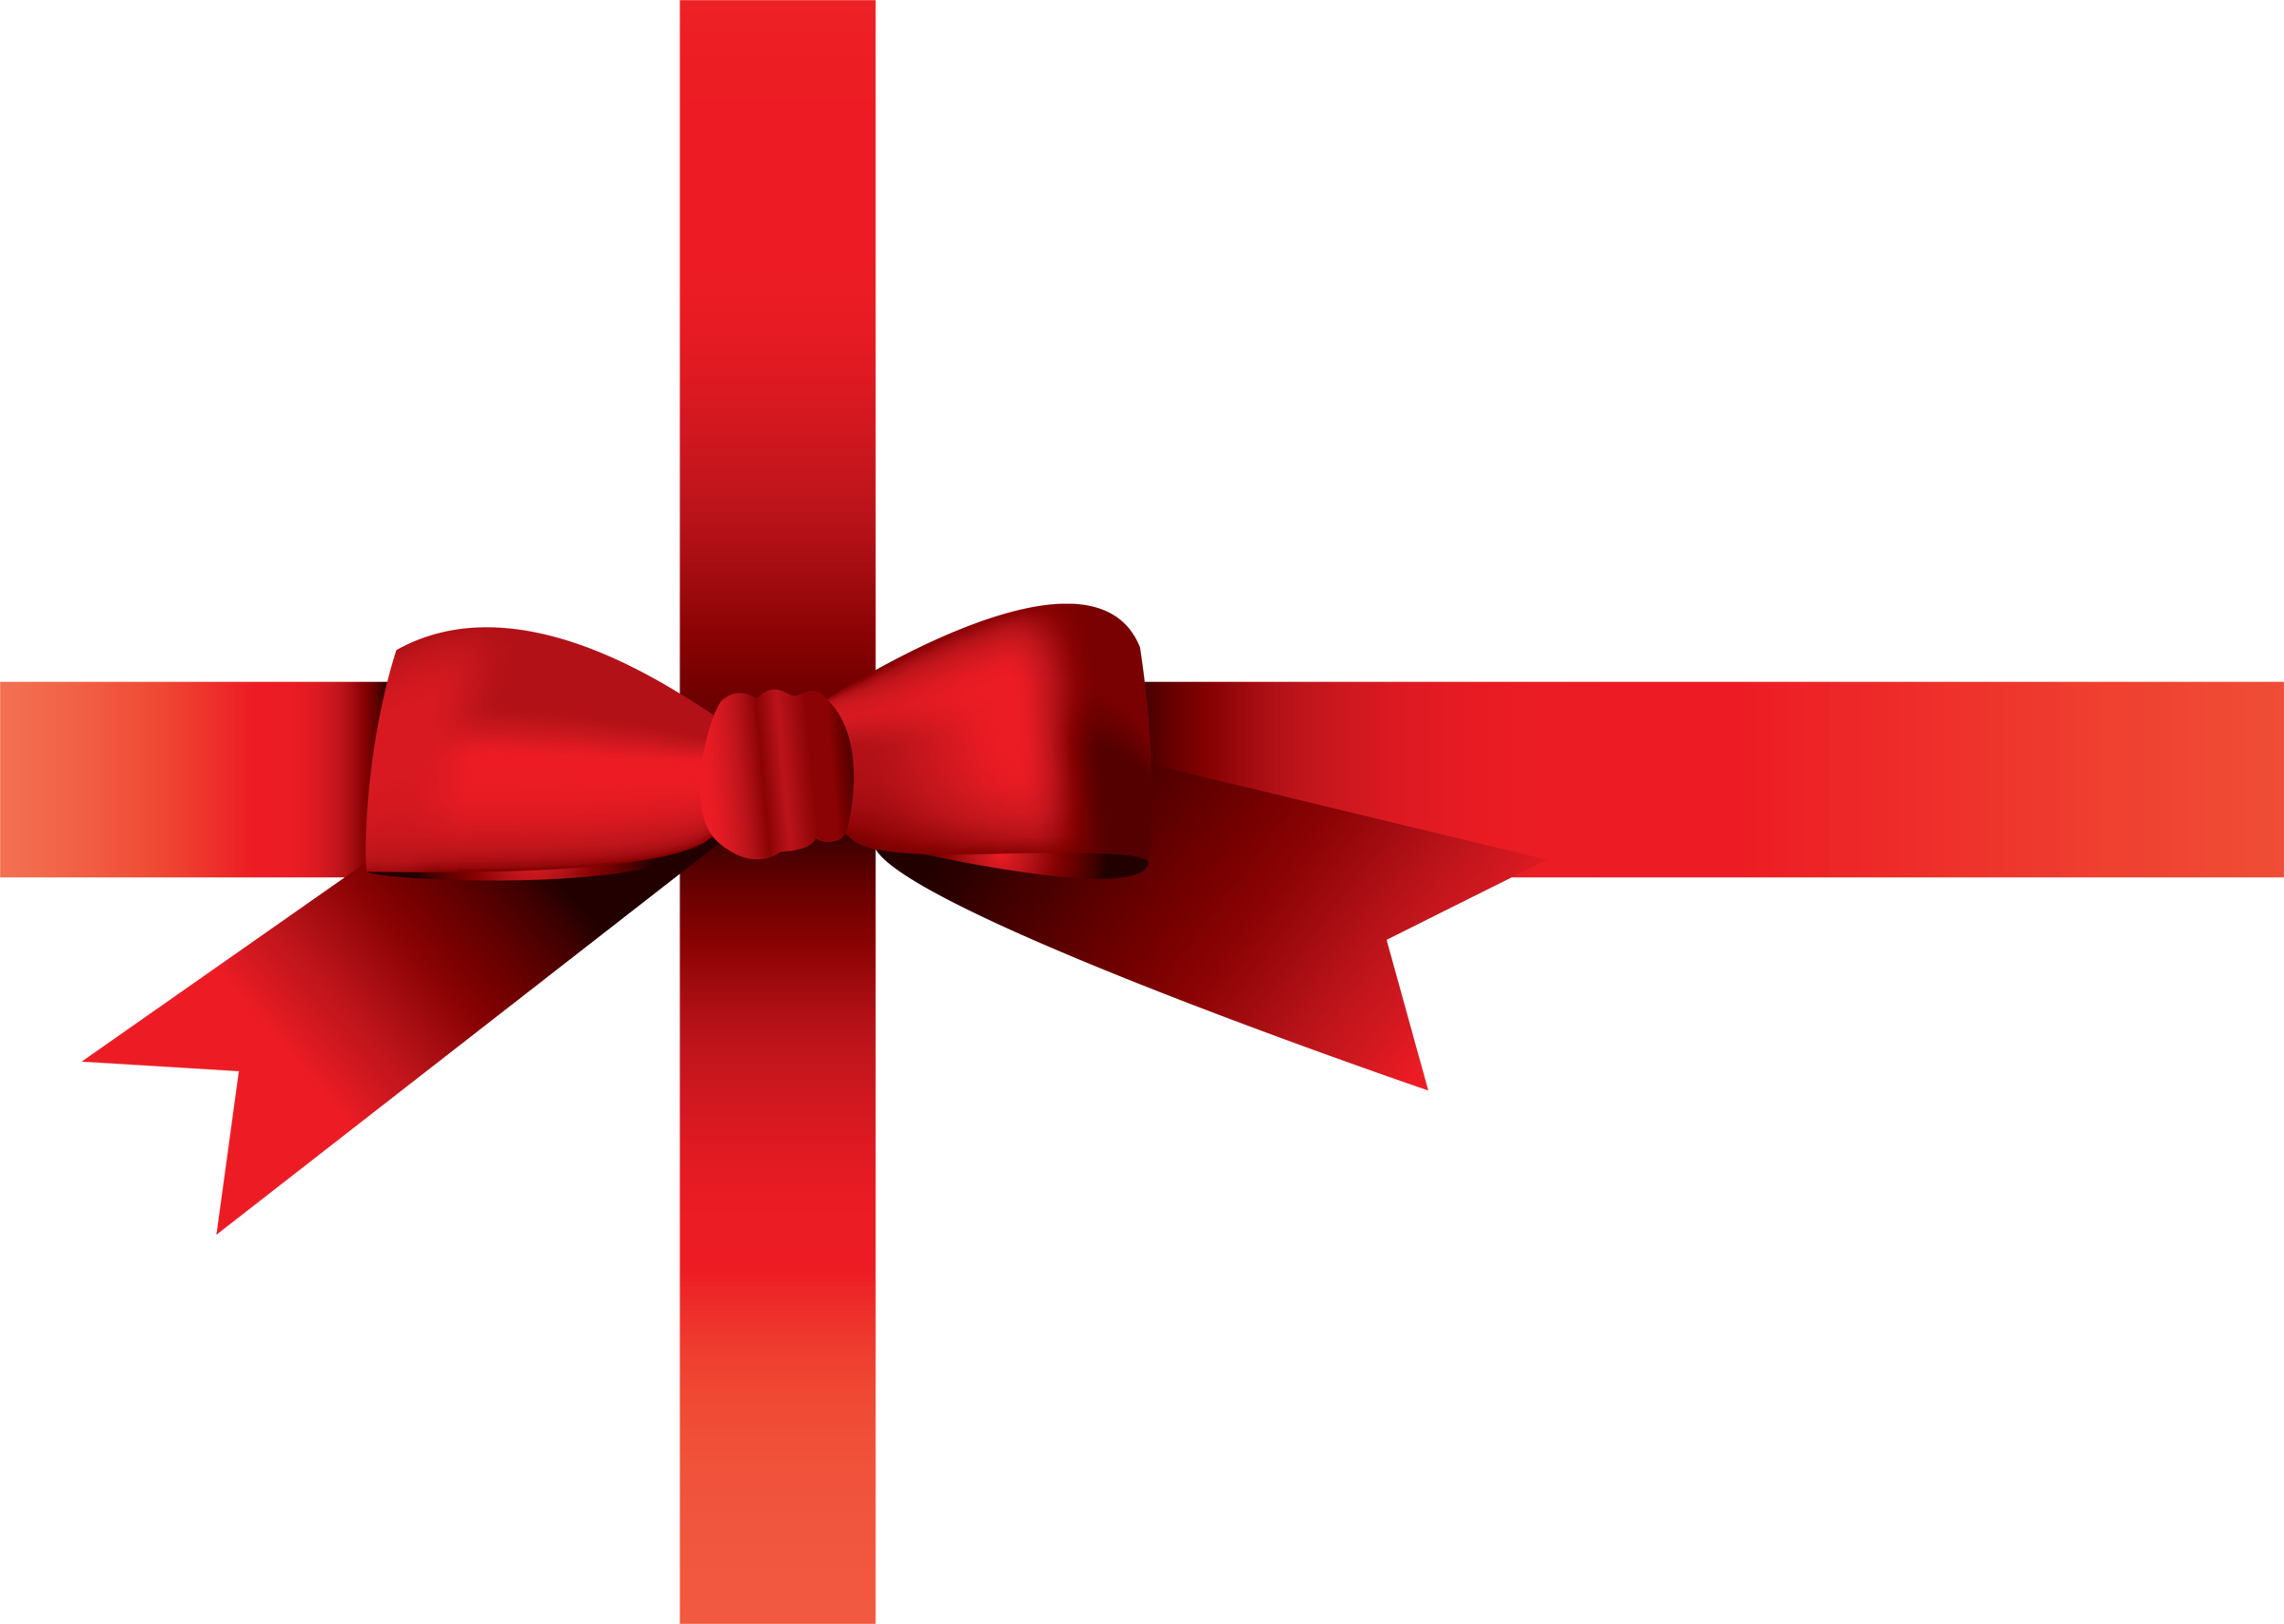 Christmas Bow Transparent Background PNG Image